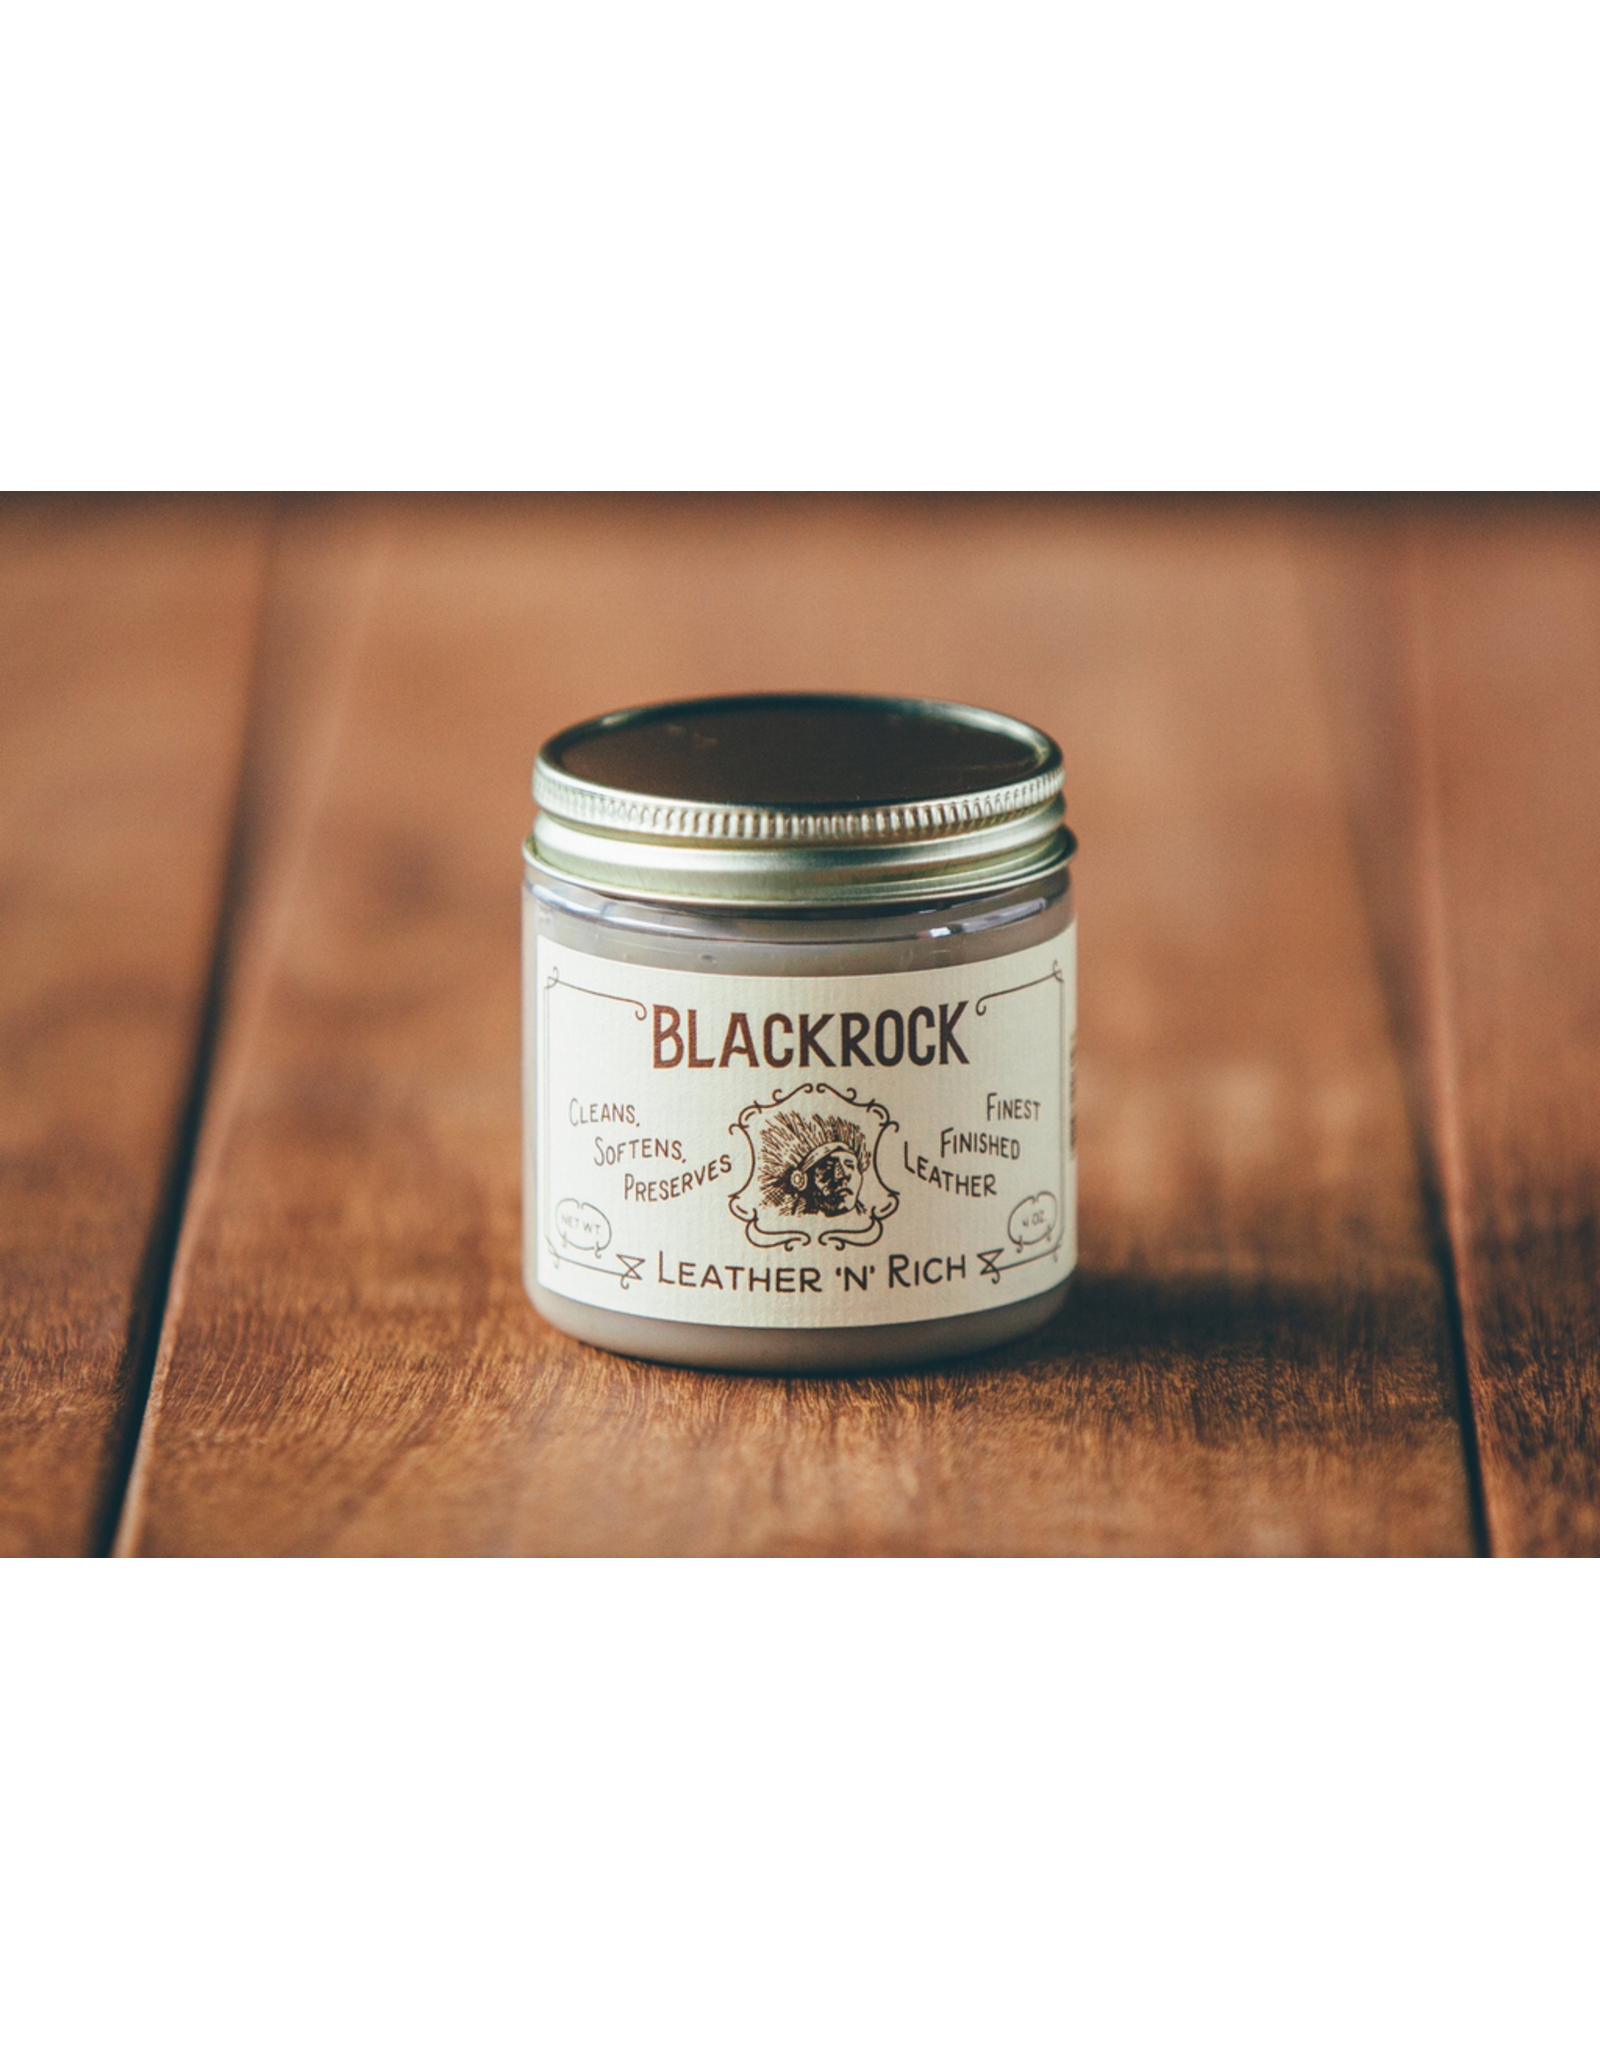 Boot Care Products BLACKROCK Leather 'n Rich